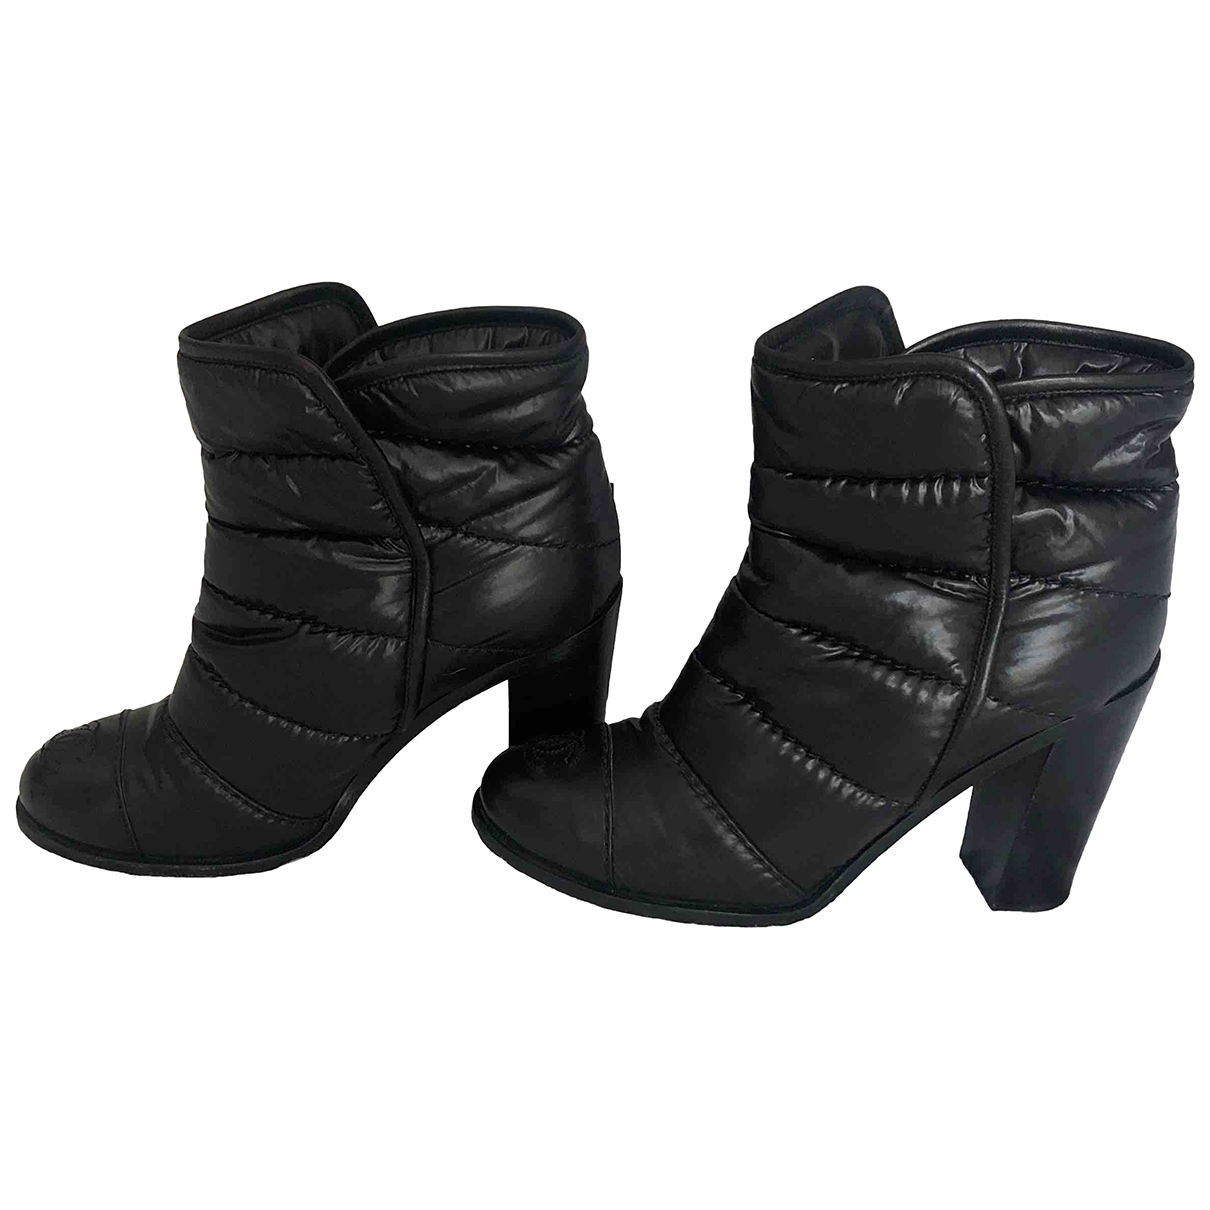 Chanel \N Black Leather Boots for Women 37 EU